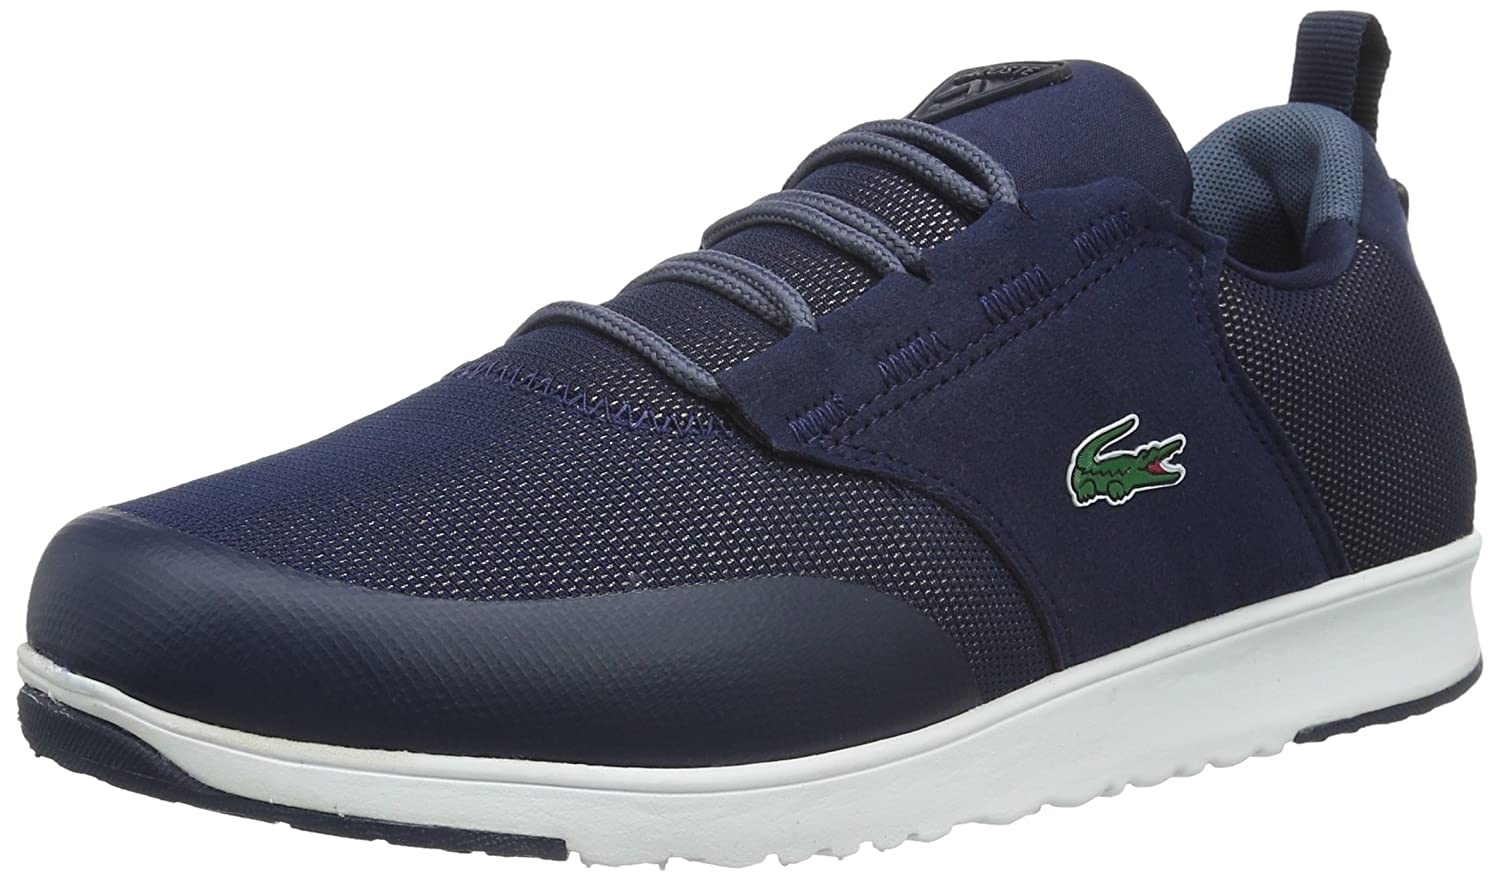 Lacoste L.Ight R 316 1 SPW Nvy, Bajos para Mujer 37 EU|Azul (Nvy)